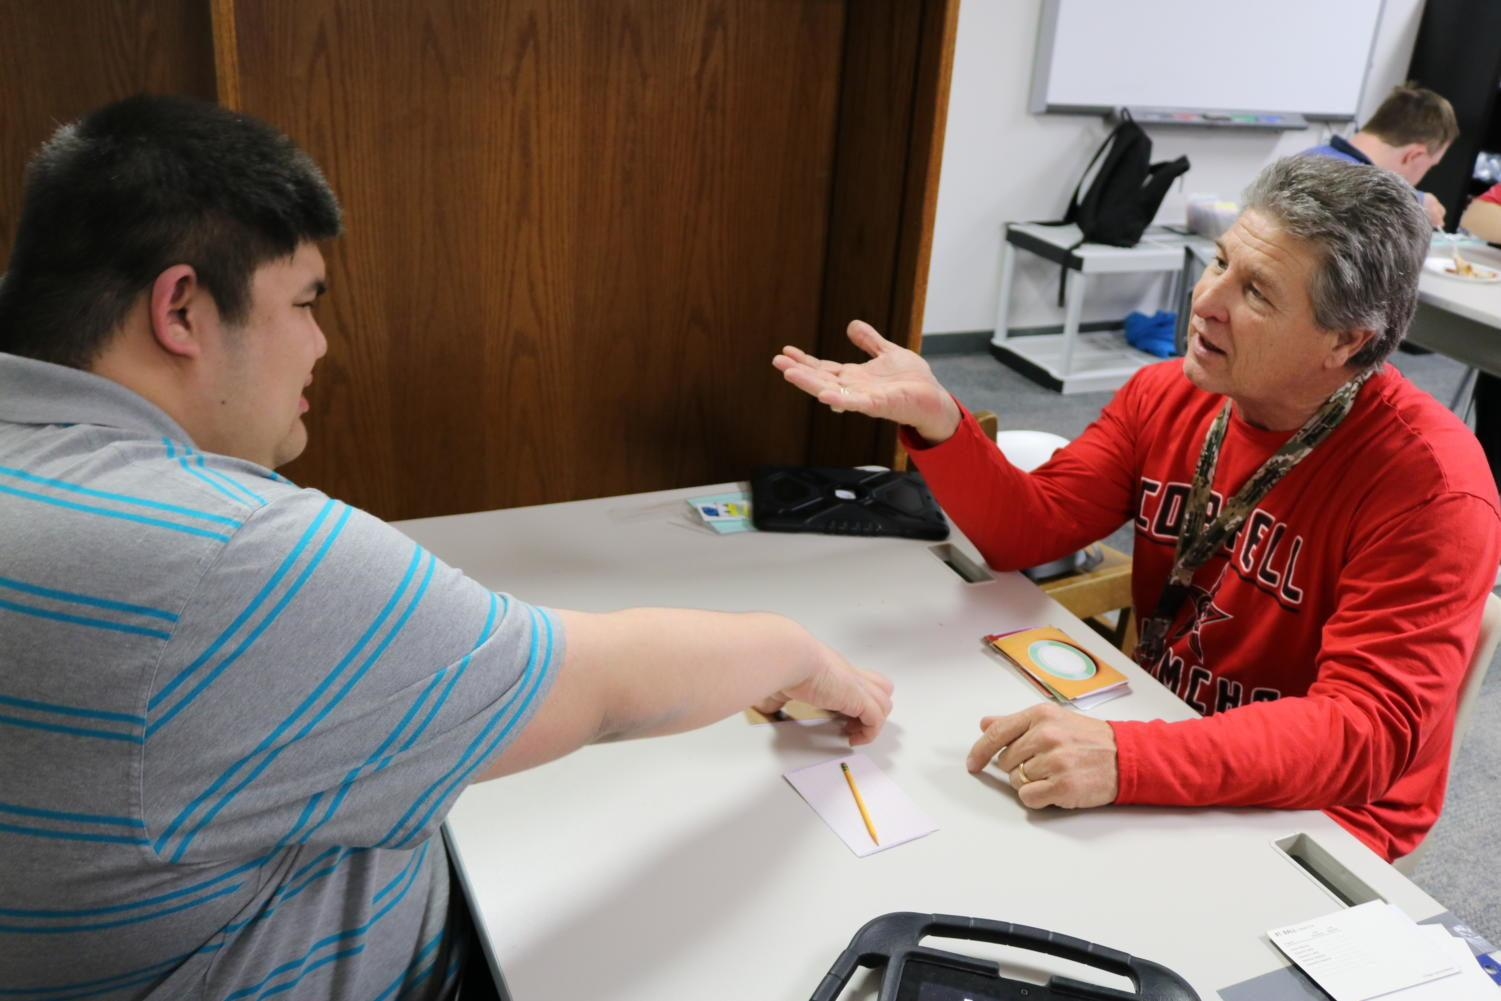 Coppell High School student Nathaniel Umlas  learns Intensive Teacher training (ITT) cards with special needs teacher, Ed Beal, in the new education room D101. Beal moved his special needs classroom from C hall to D hall this school year for a more spacious and accessible learning room for students.